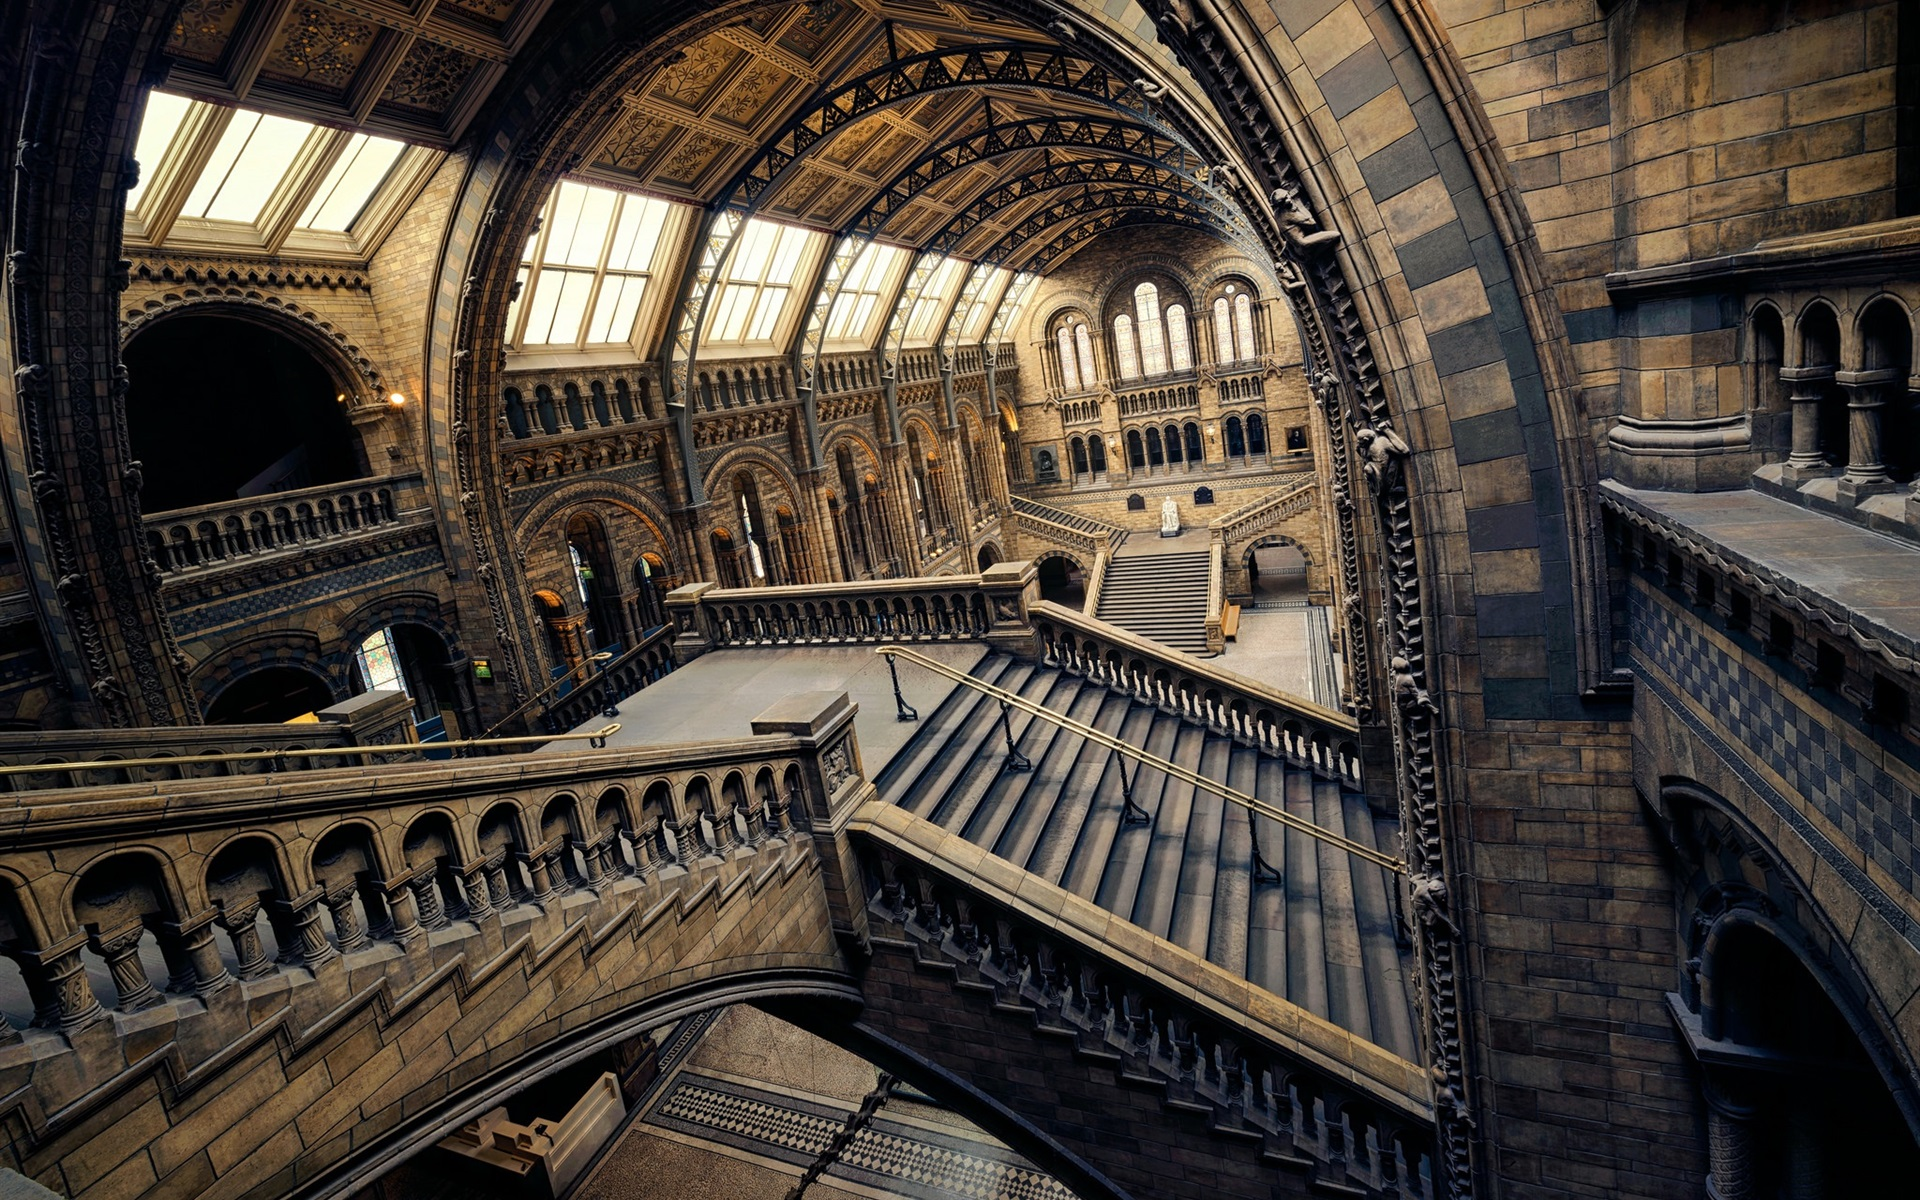 wallpaper museum of natural history, london, england 1920x1200 hd